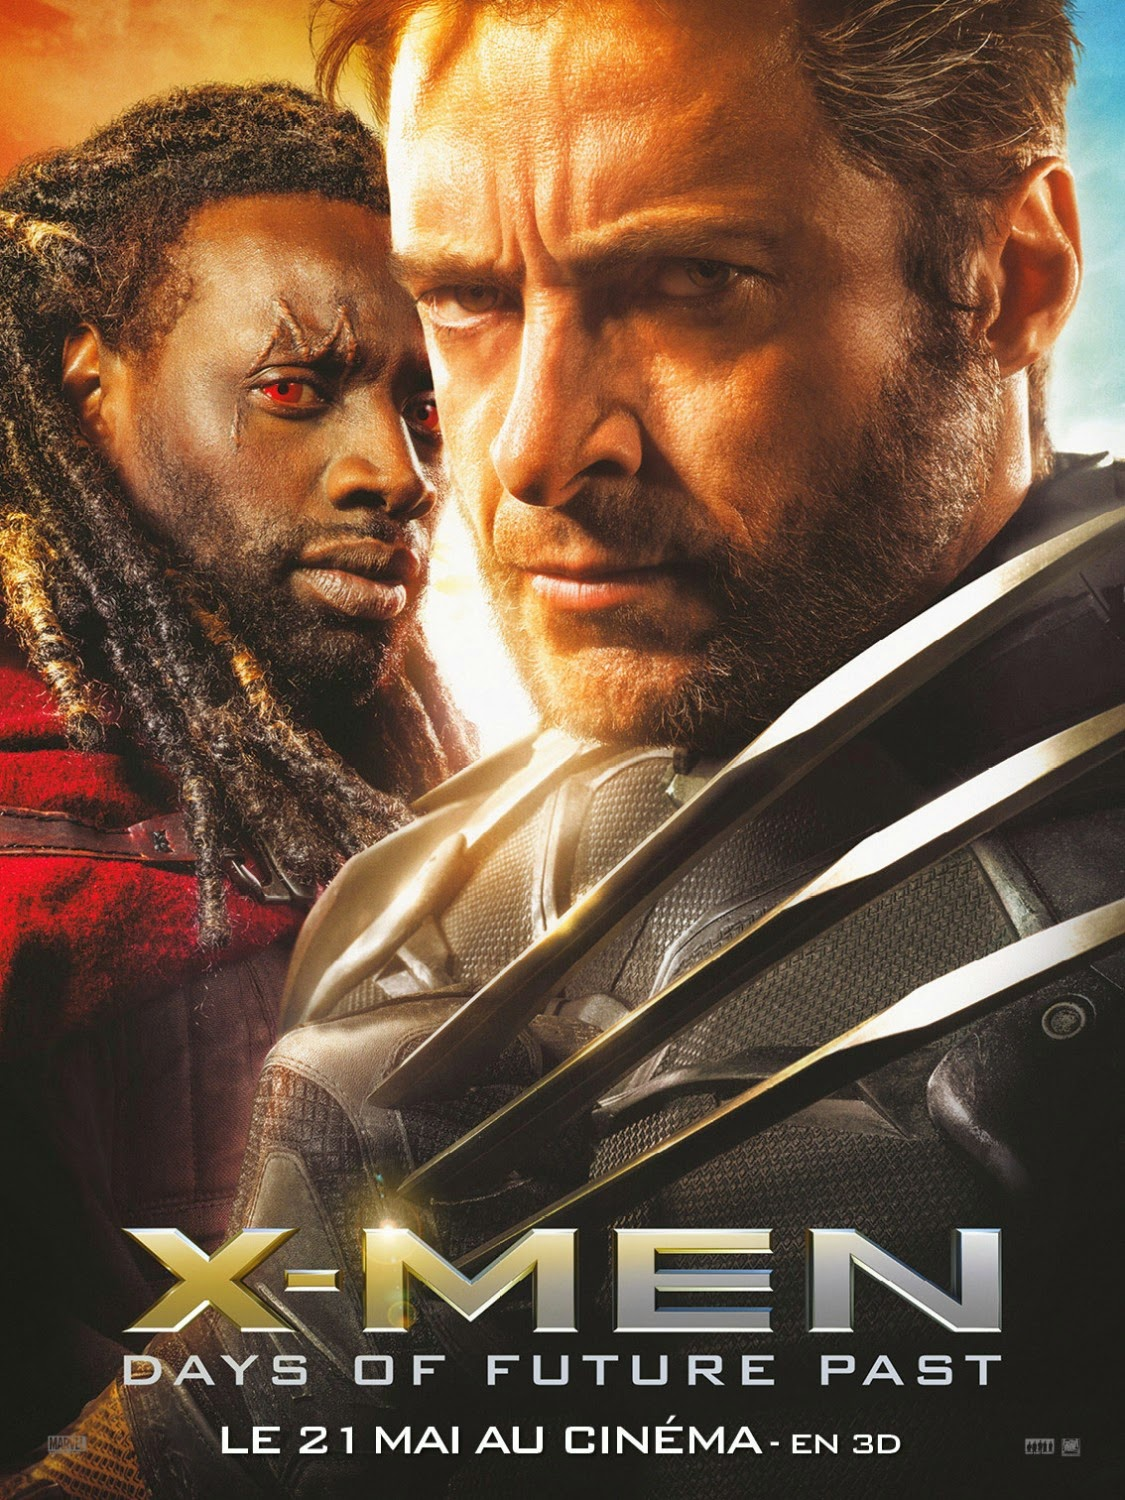 X-Men Days of Future Past Character Movie Poster Set - Omar Sy as Bishop & Hugh Jackman as Wolverine